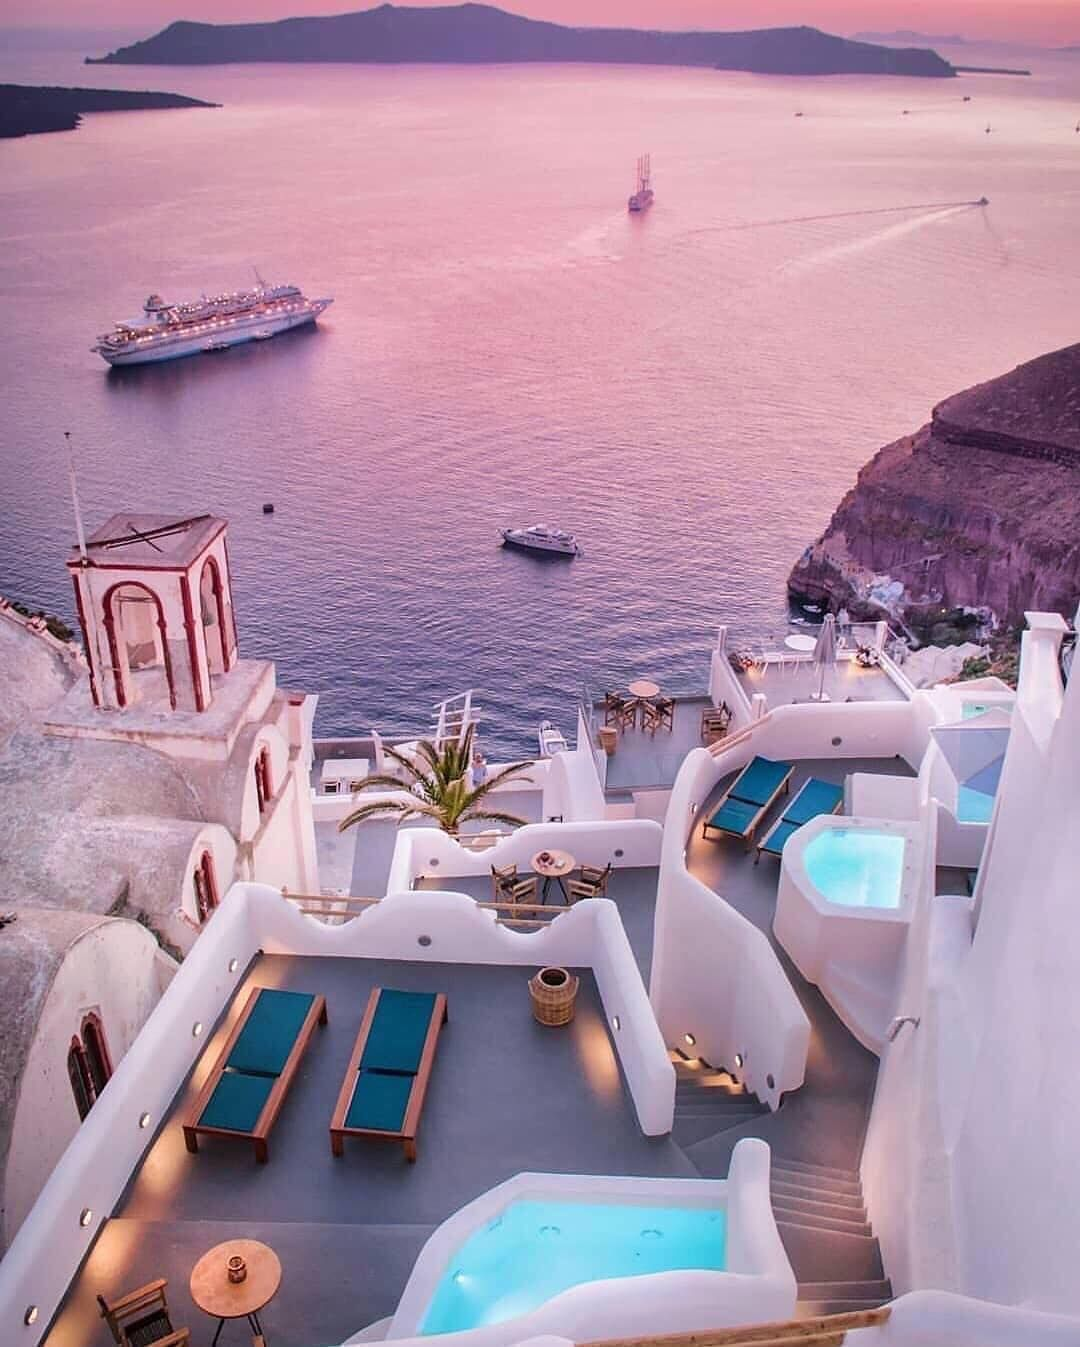 Beautiful Hotels Resorts On Instagram Purple Hues Over